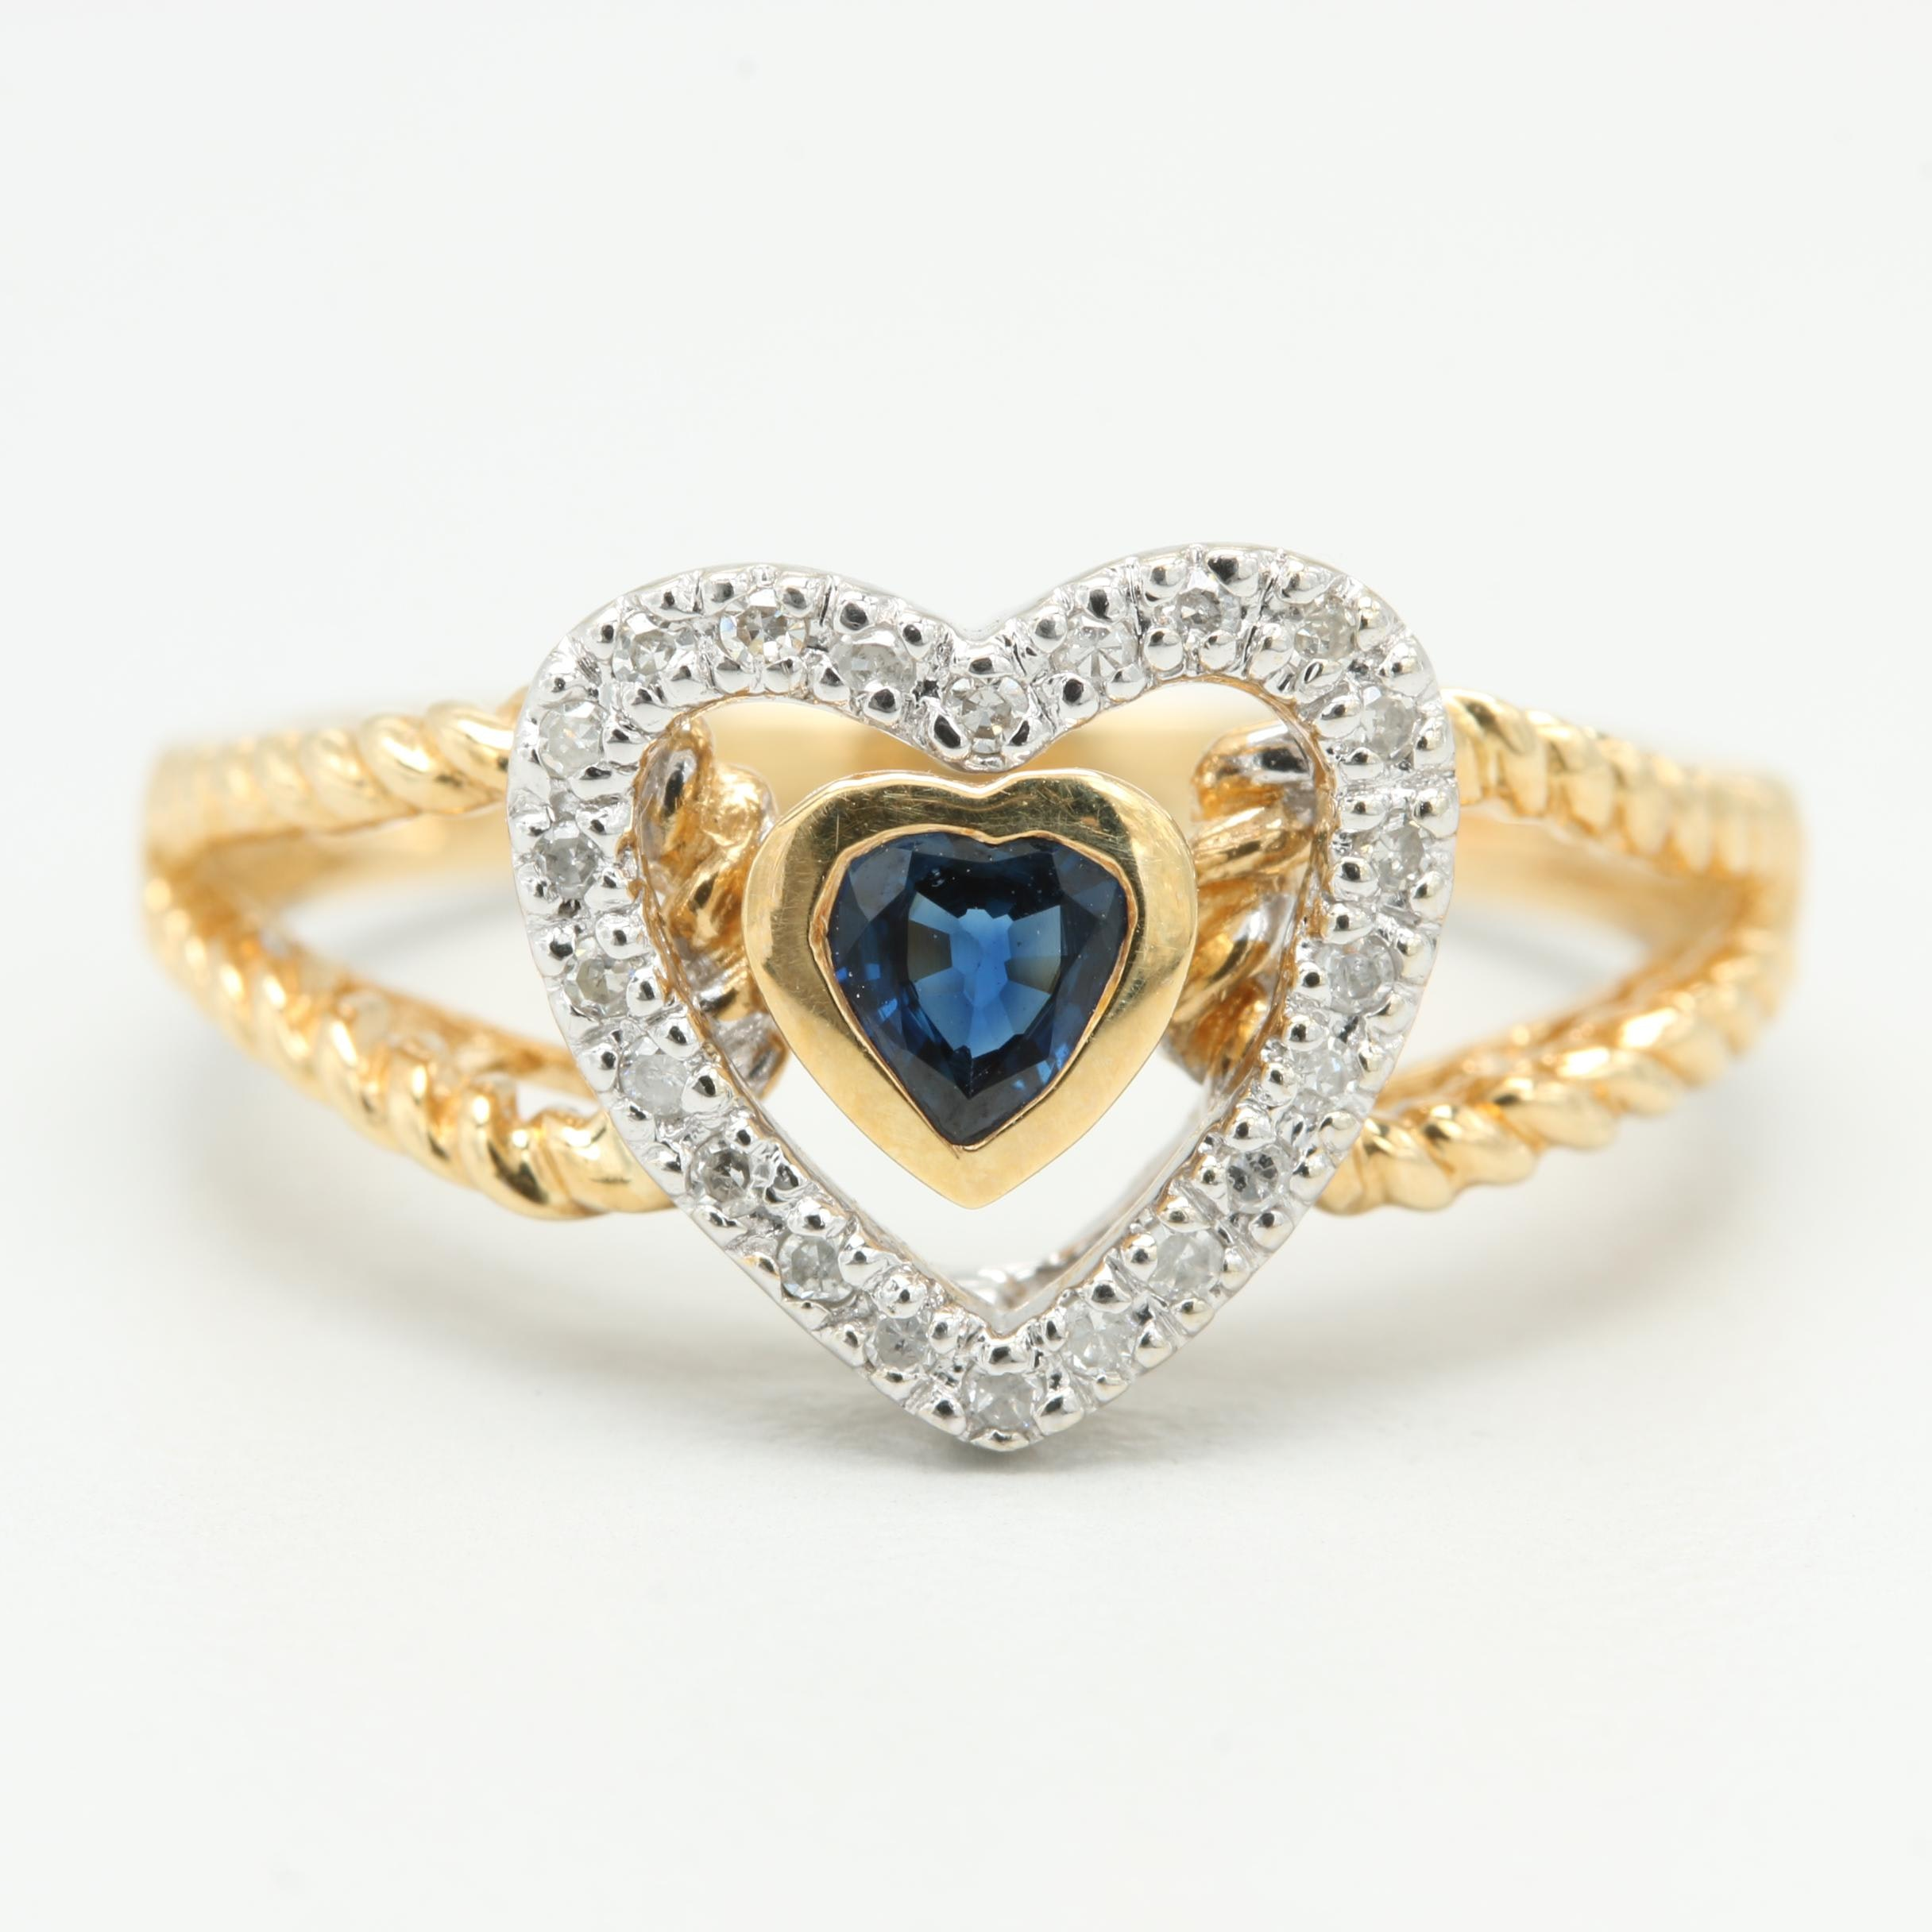 14K Yellow Gold Sapphire and Diamond Heart Ring